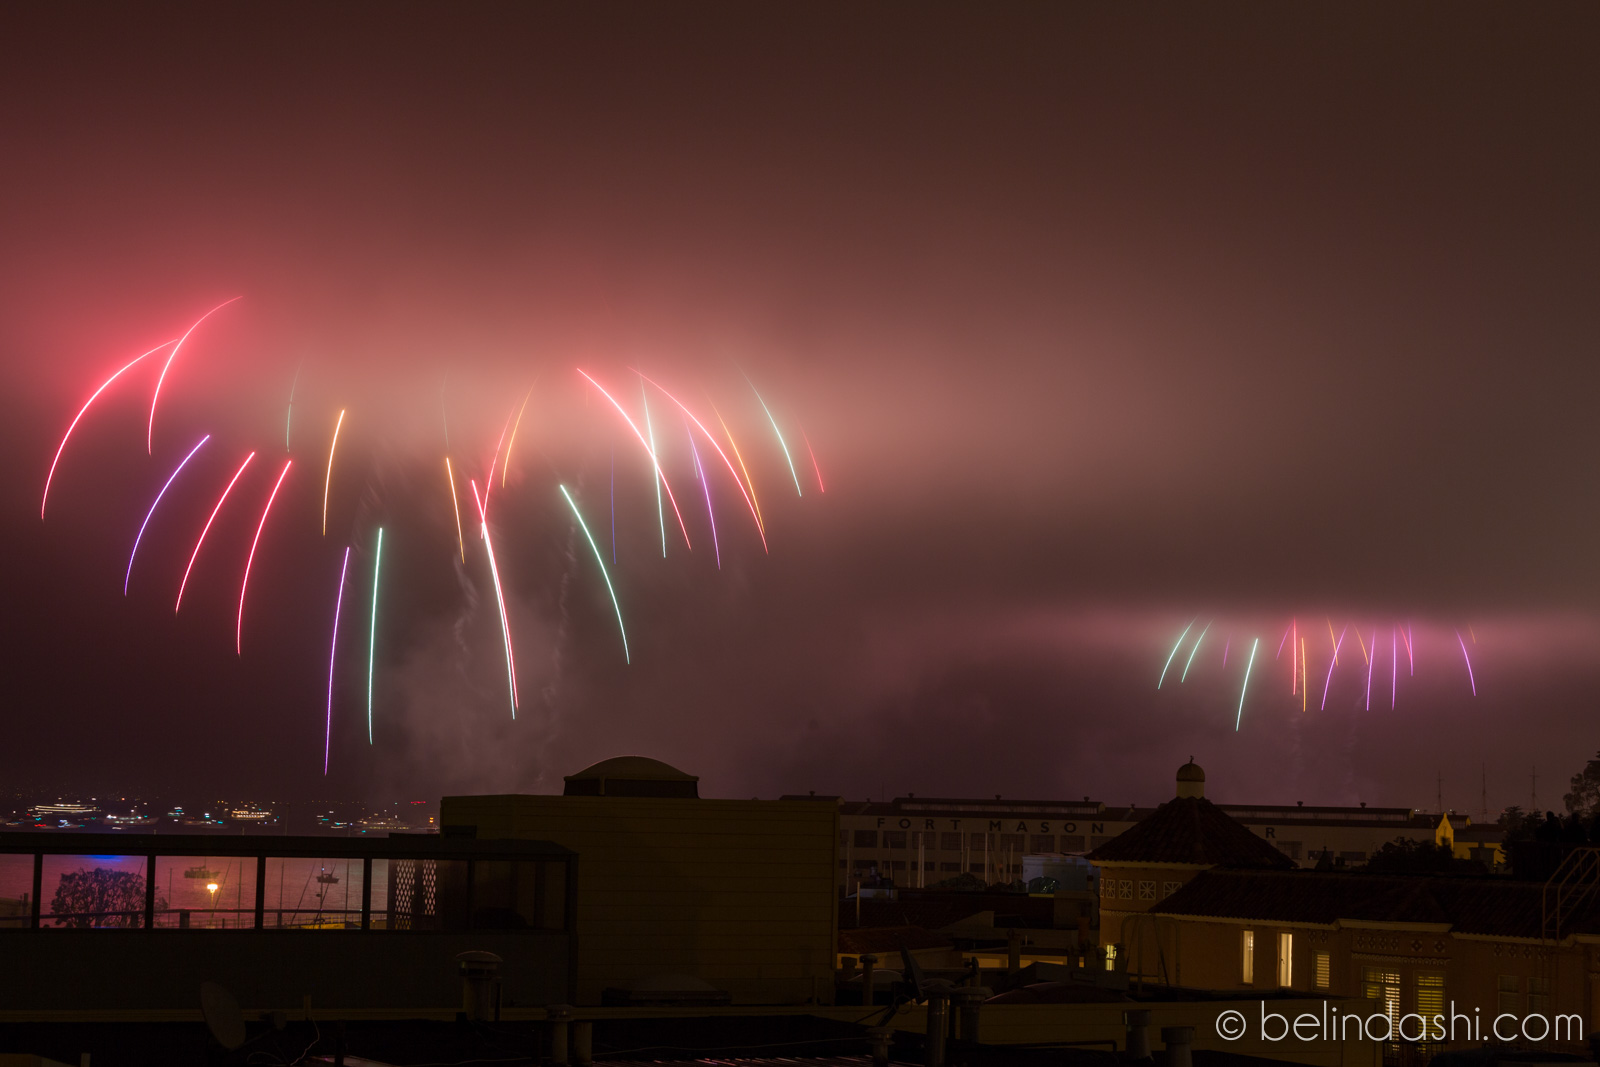 July 4th fireworks in San Francisco 2014-008, ISO200, 70mm, f/9, 5.3sec